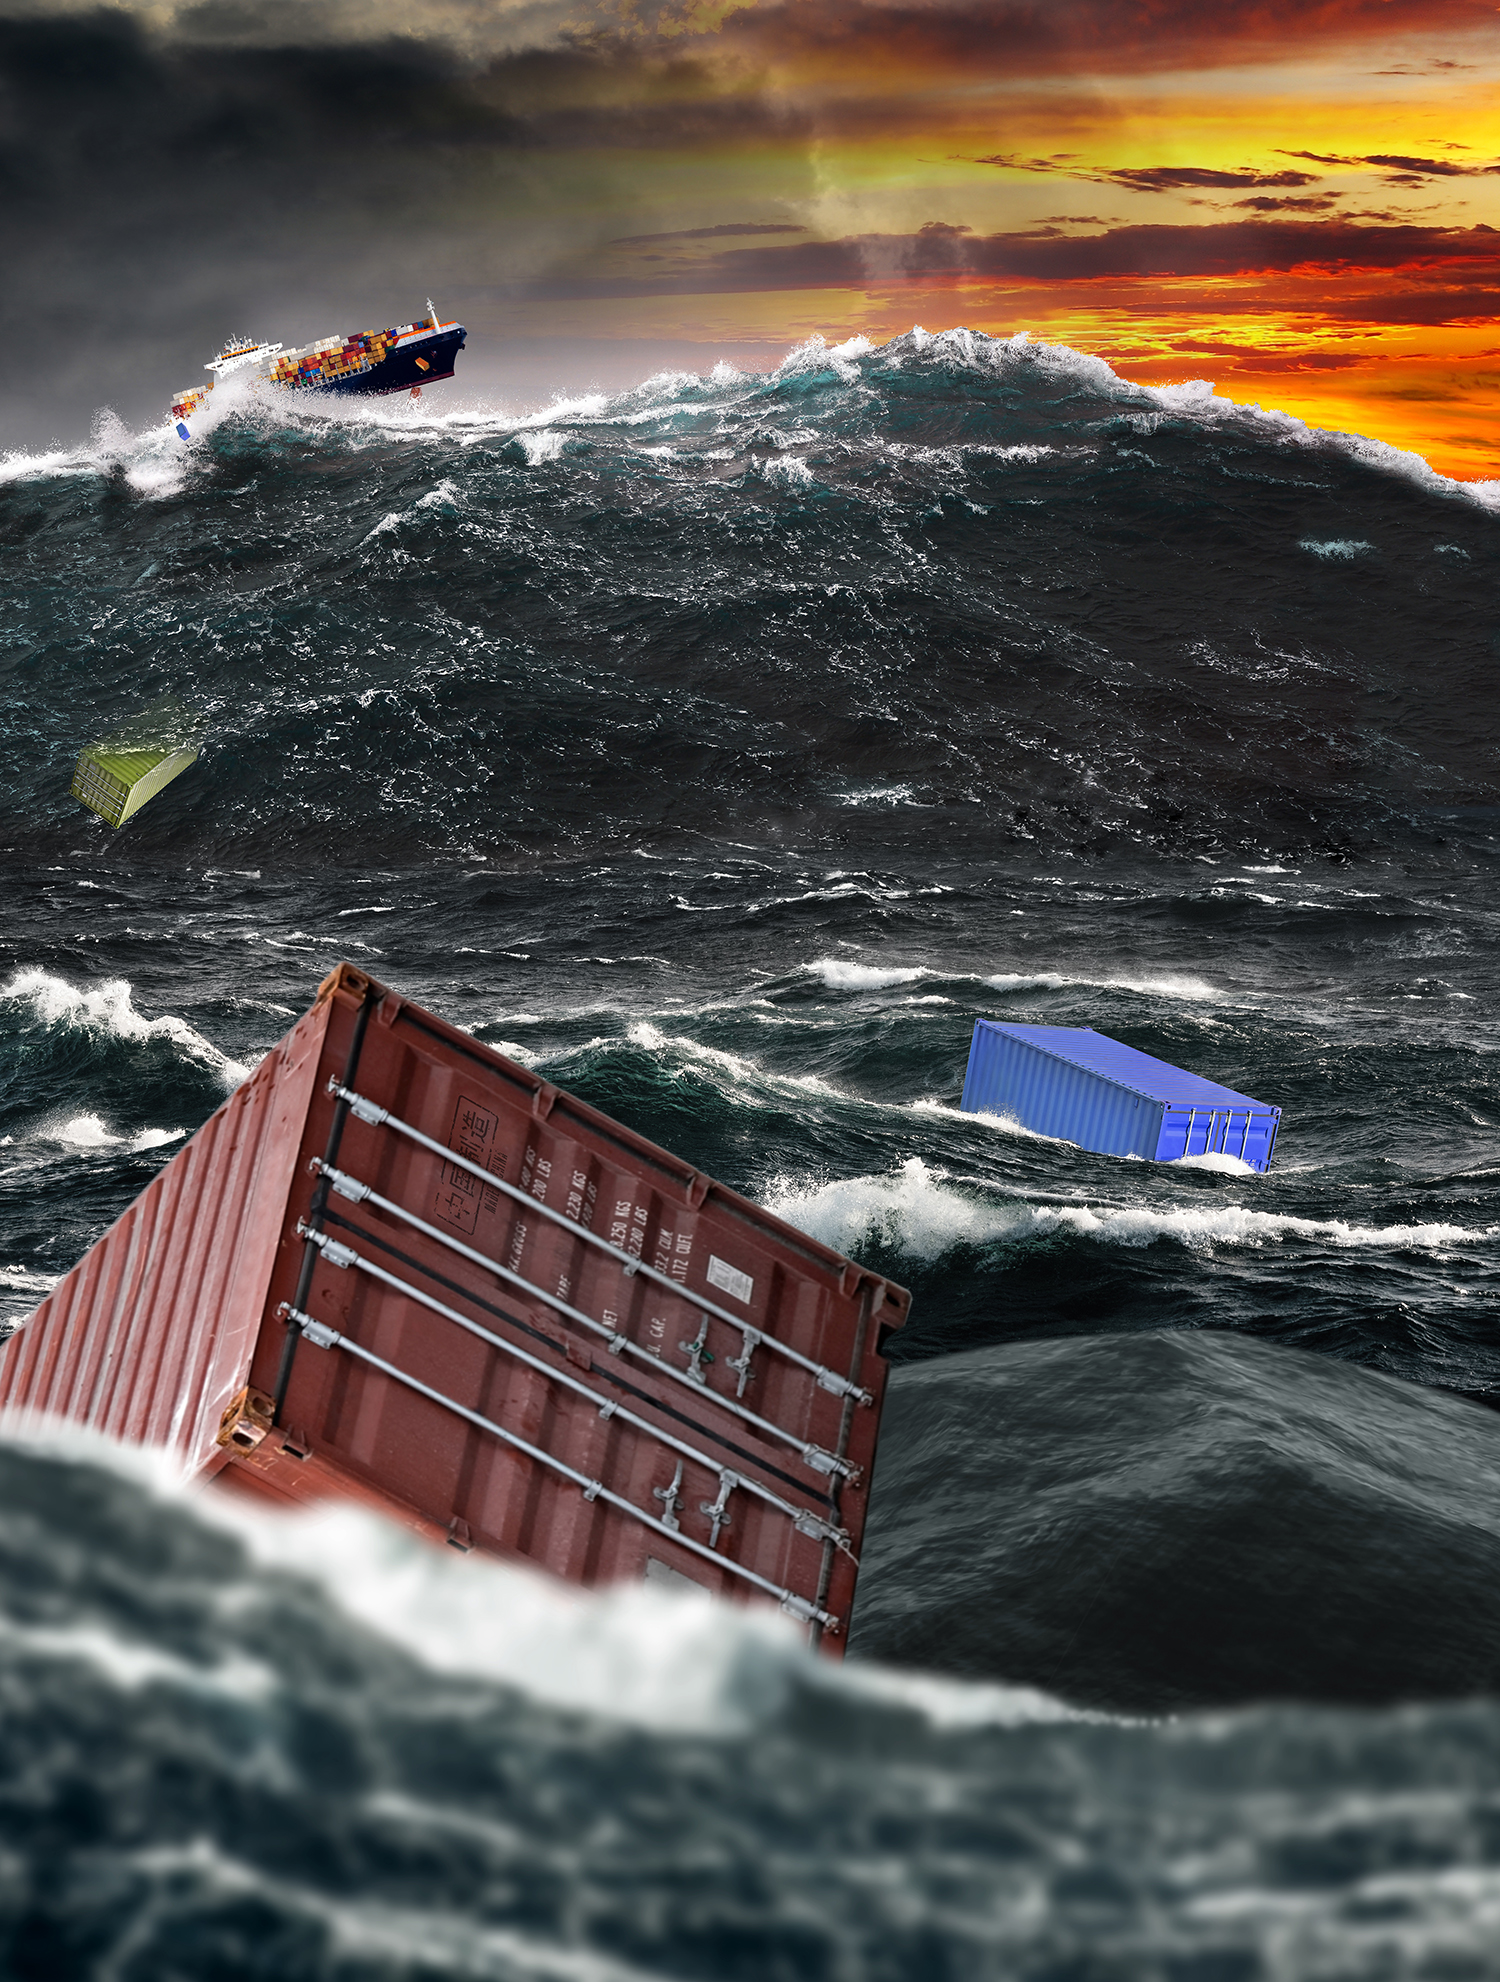 Composite for an advertisement on trade. This was not approved, though. It came across as a bit too ominous.